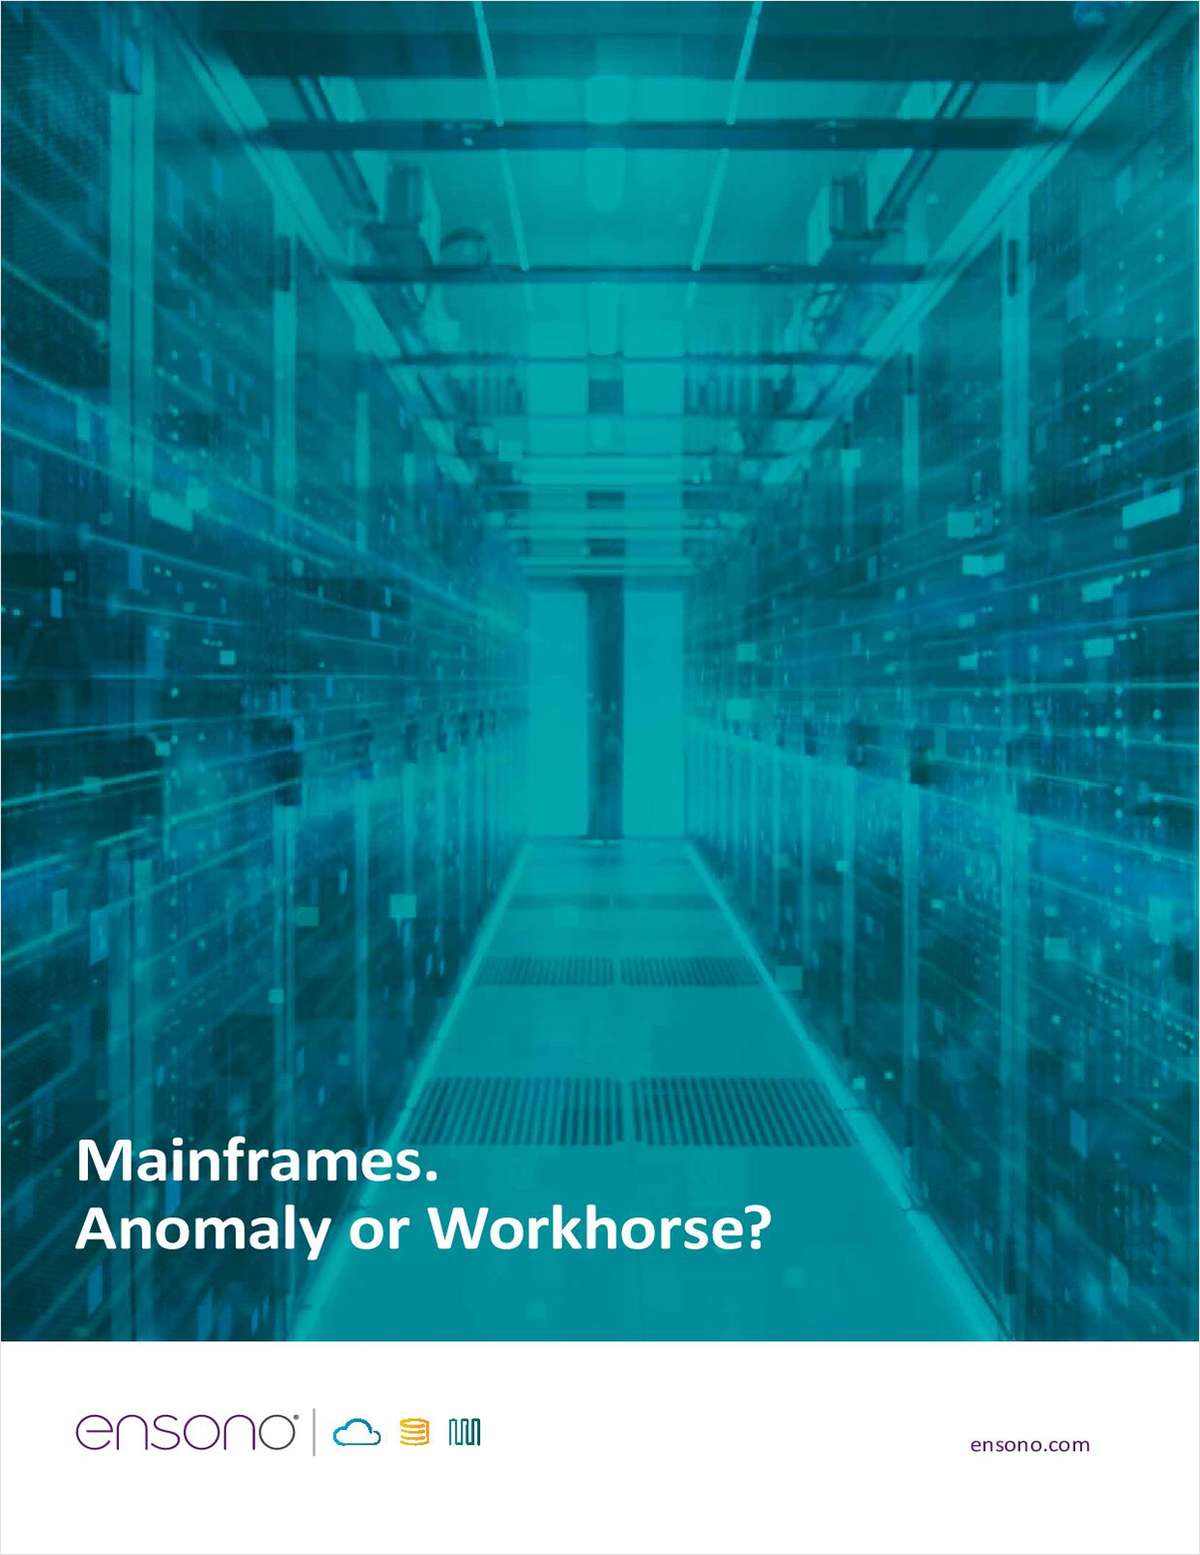 Mainframes. Anomaly or Workhorse.